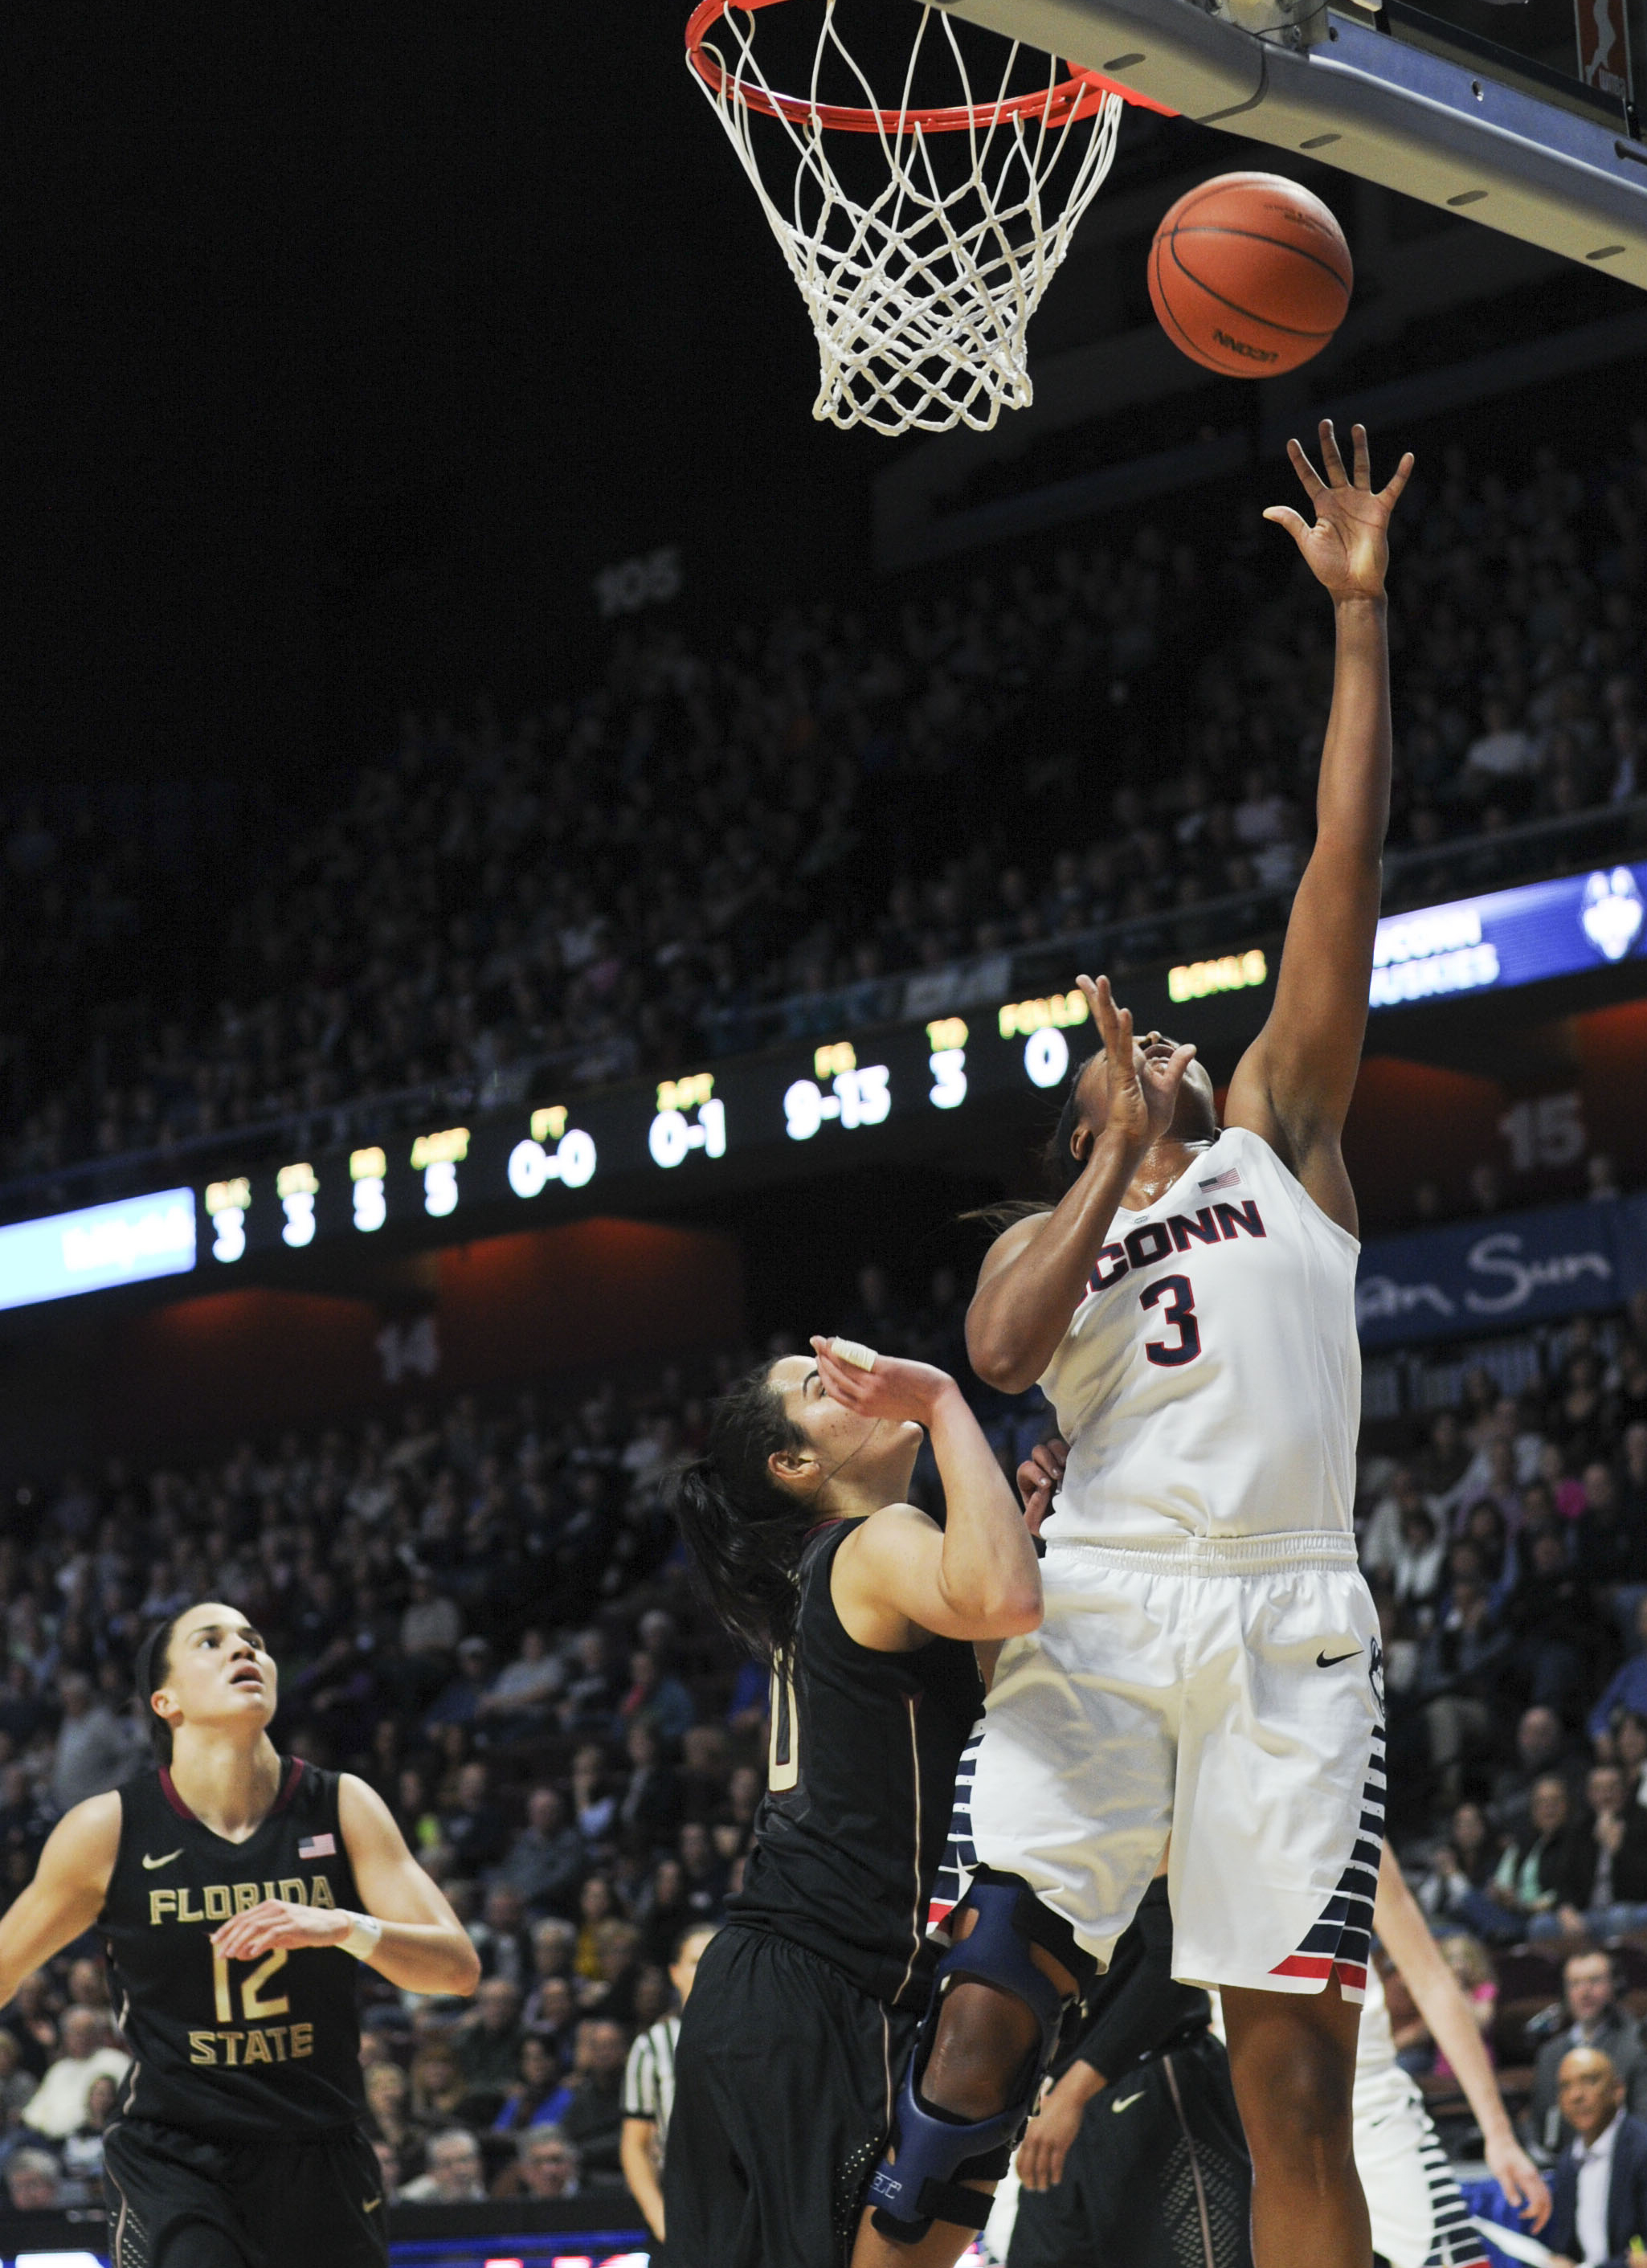 UConn forward Morgan Tuck goes for a layup against Florida State at the Hall of Fame Classic at Mohegan Sun Arena on Dec. 11, 2015. (Bailey Wright/The Daily Campus)